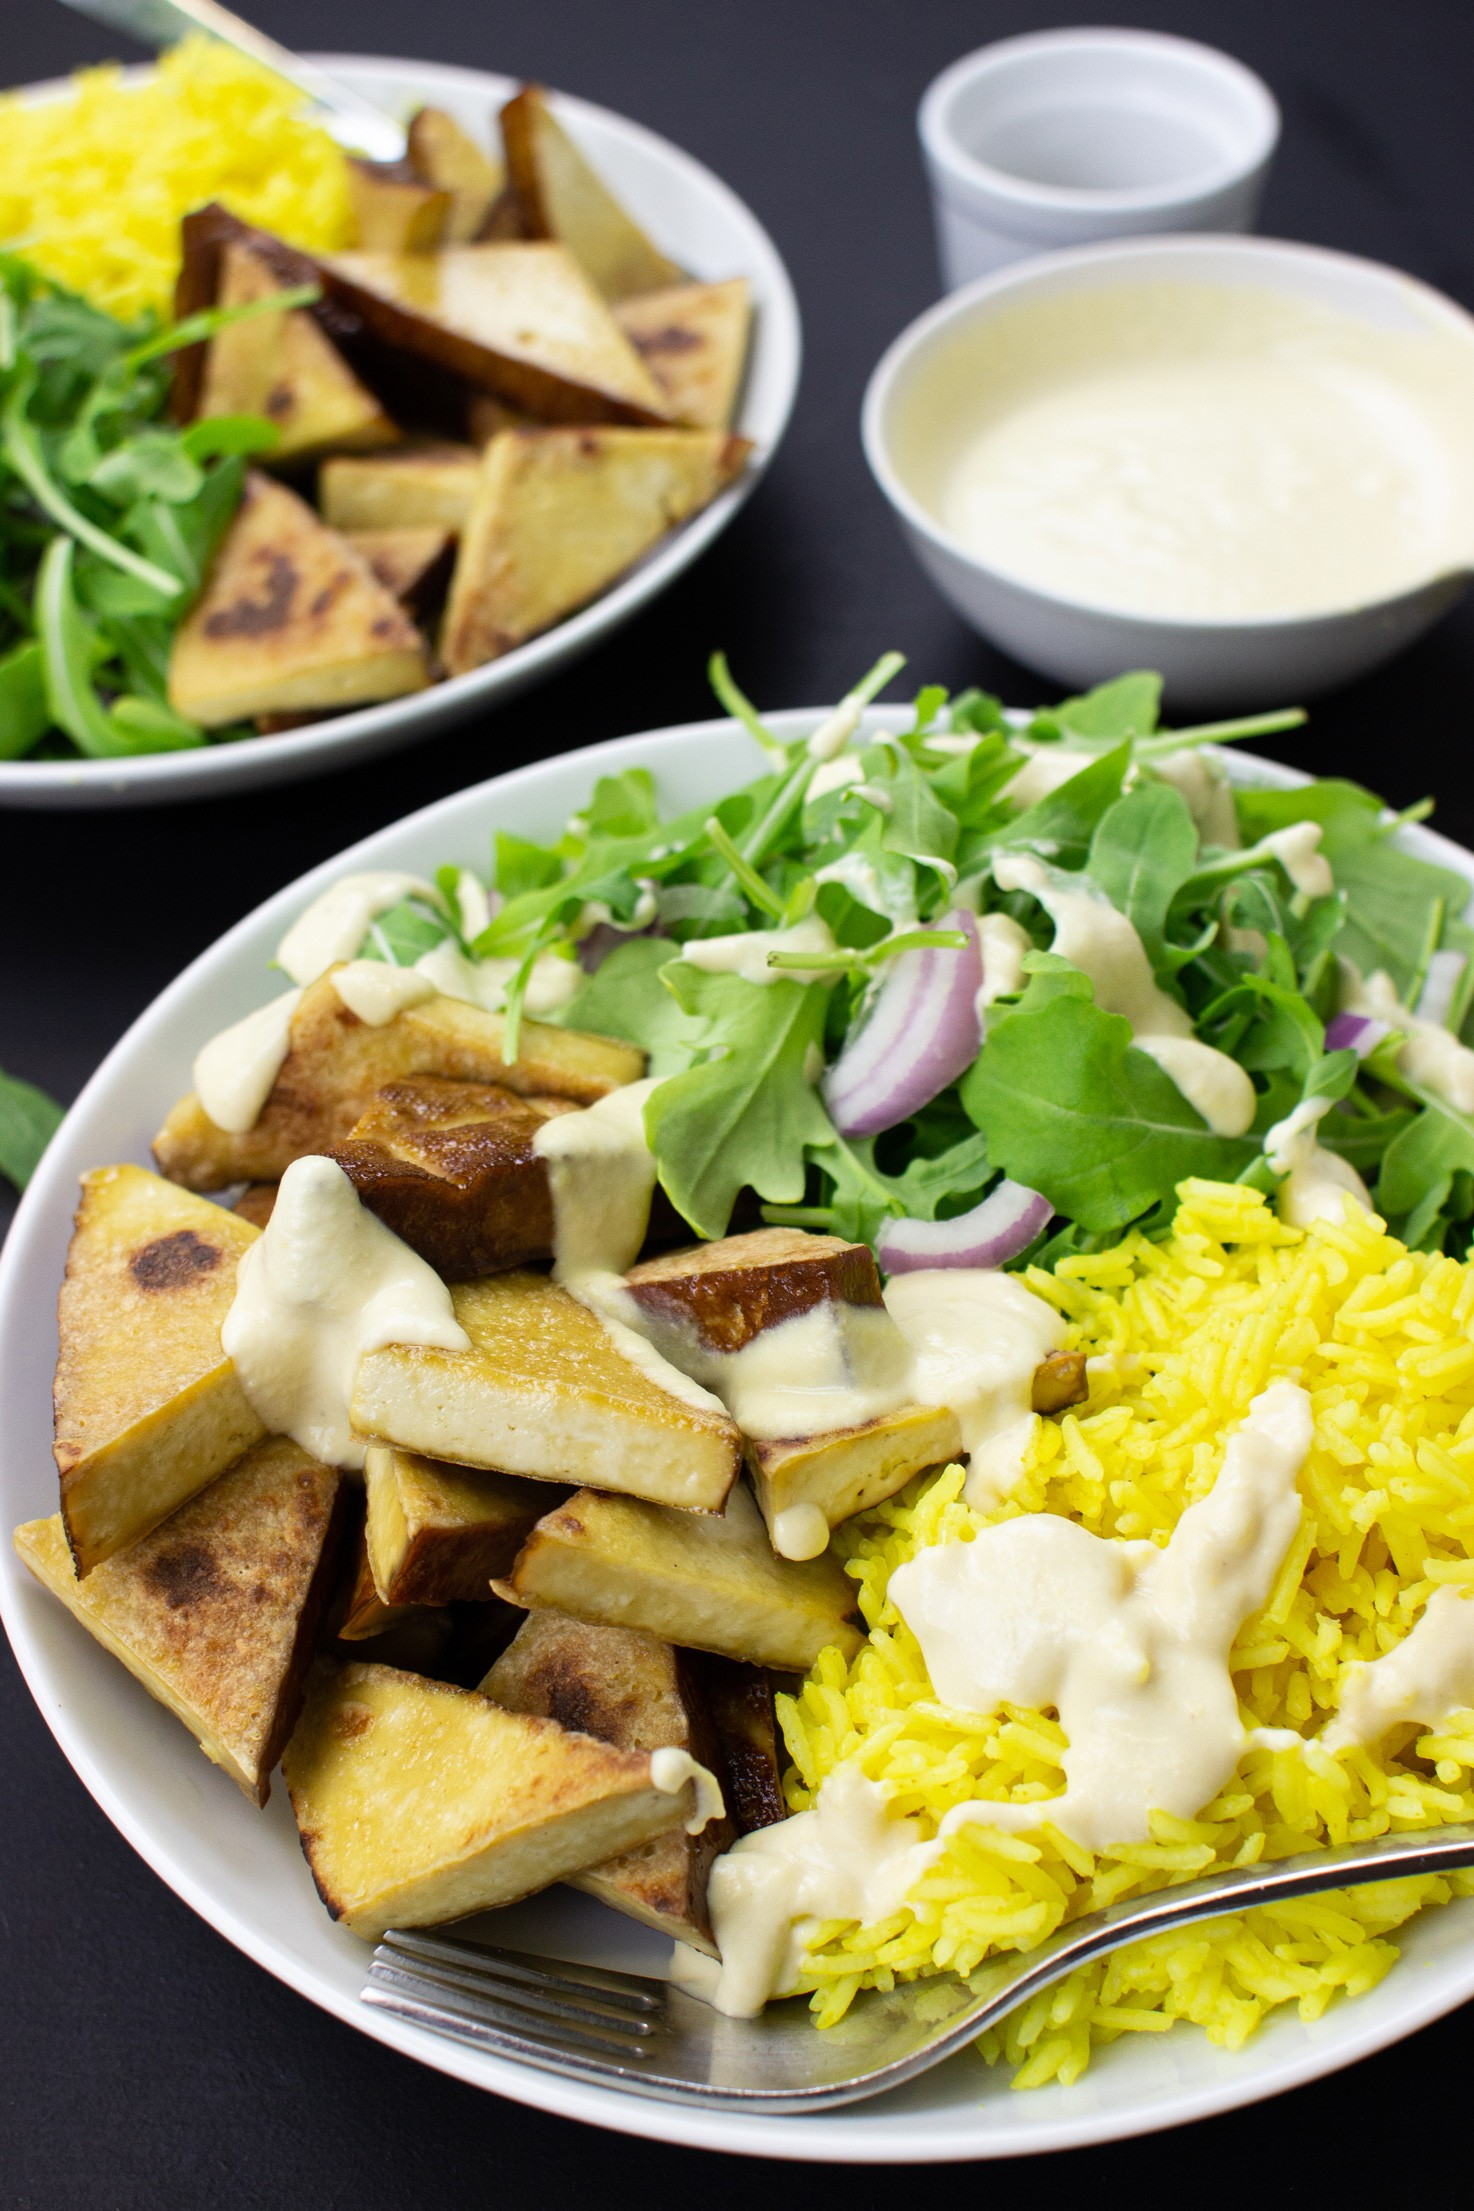 Smoked Tofu & Hummus Buddha Bowl with lamb's lettuce are on the black table on 2 plates with forks, pepper and hummus #smoked tofu #olive oil   hurrythefoodup.com